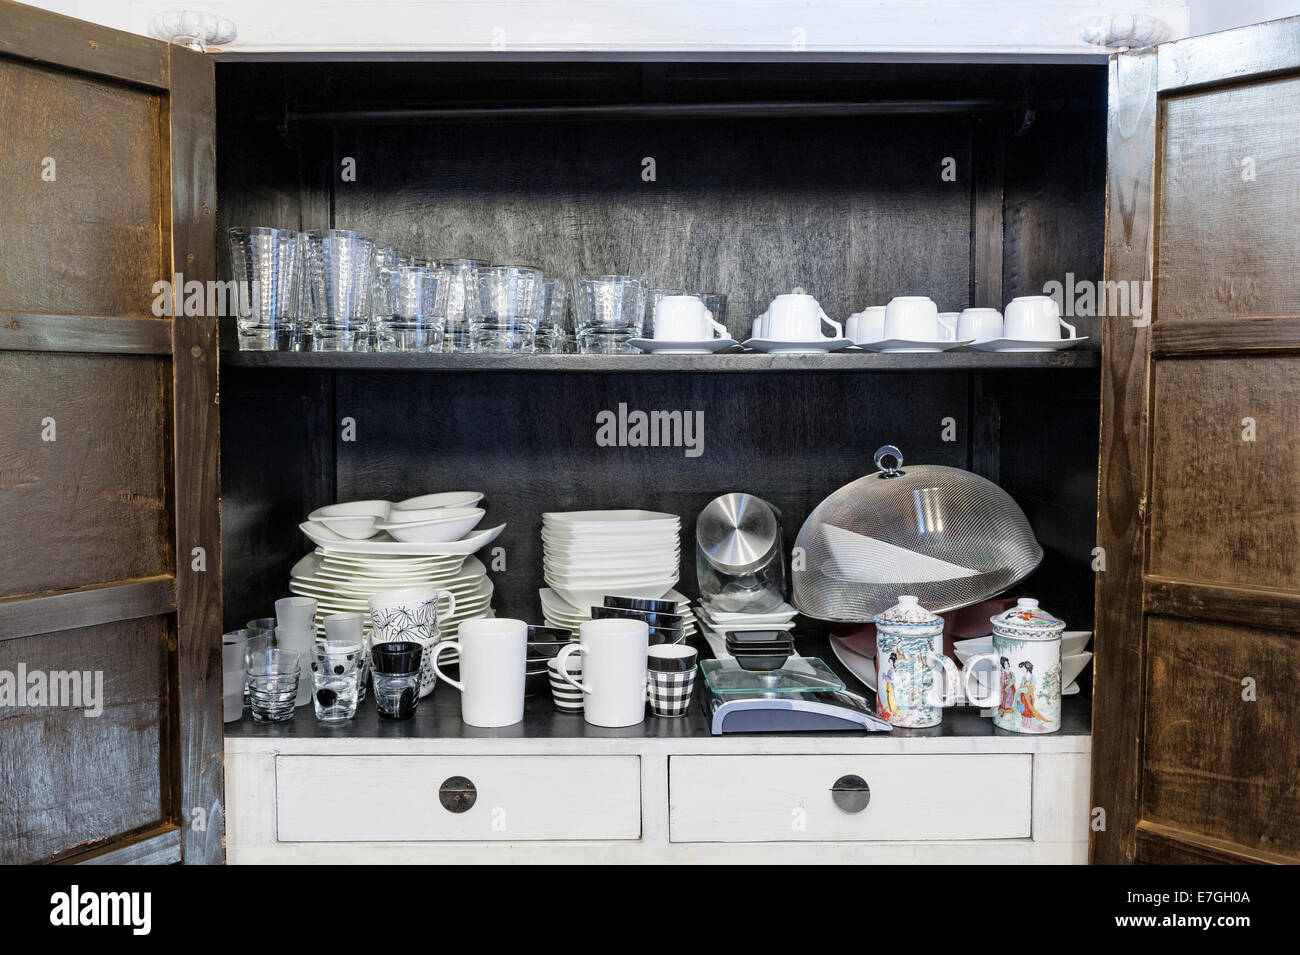 kitchen cabinet with traditional utensils and tools - Stock Image